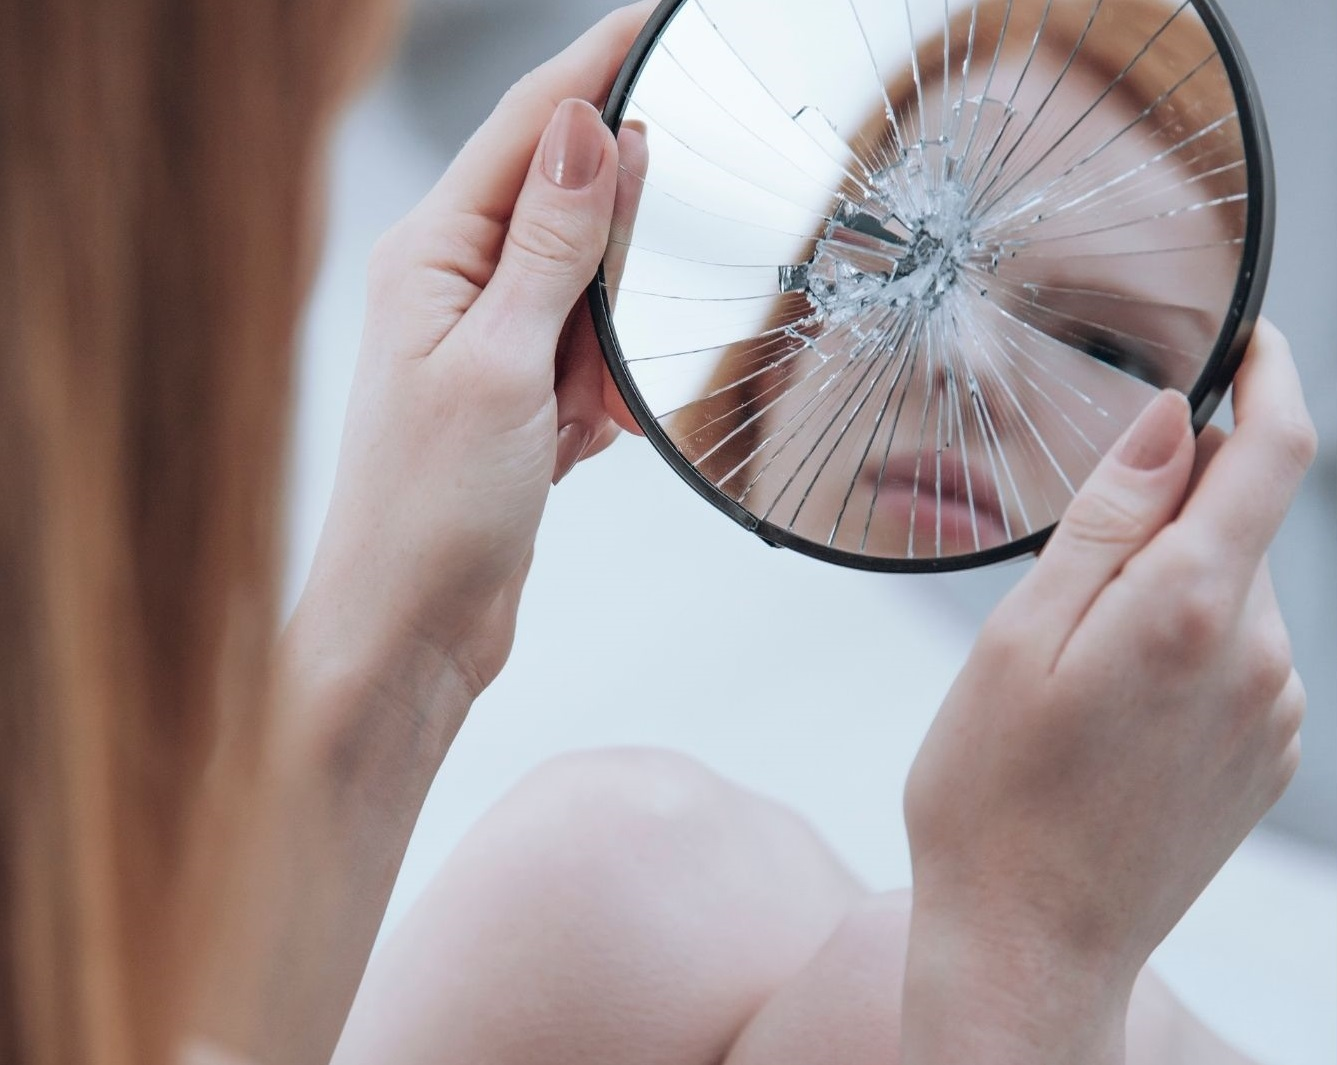 woman mirror - Advantages of being ugly